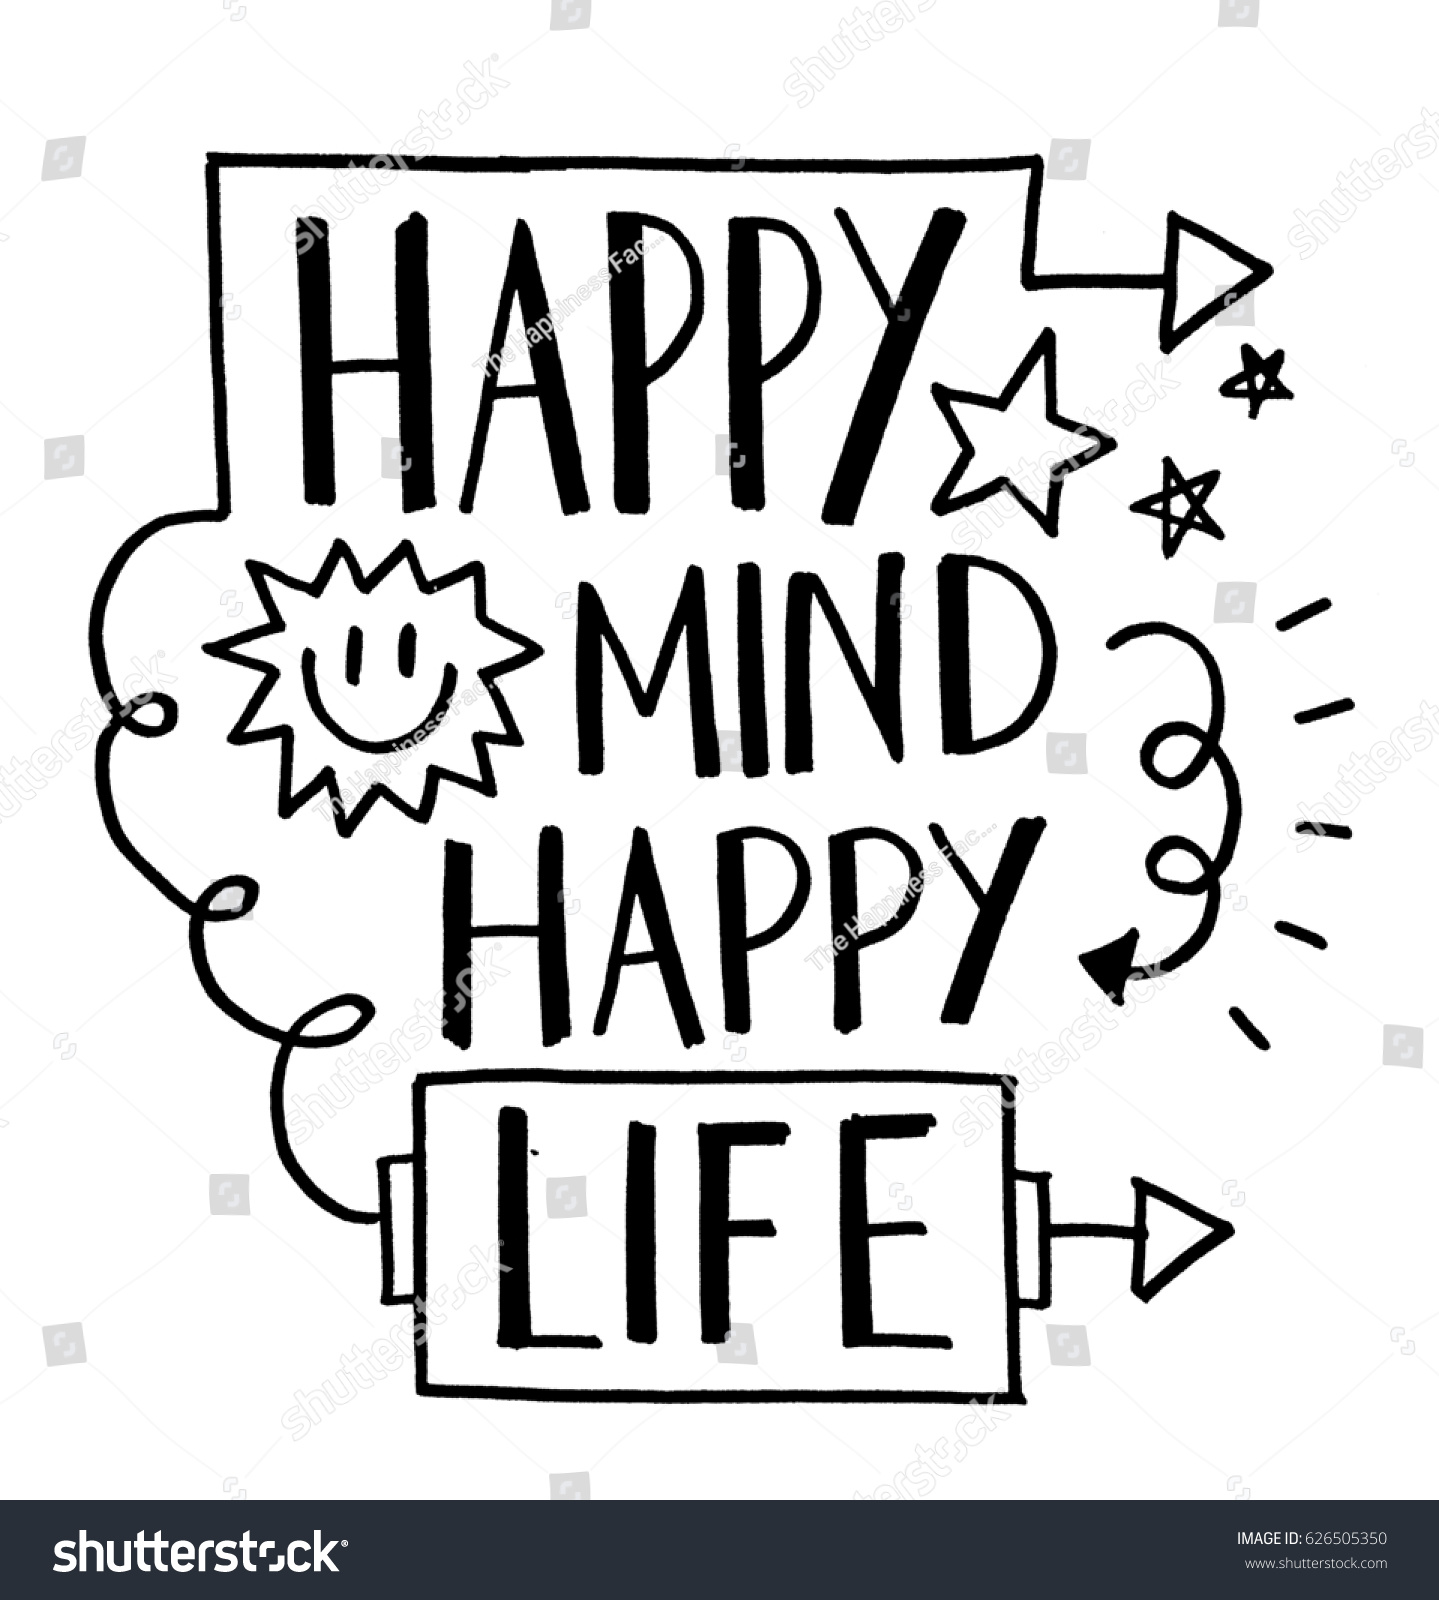 How To Be Happy In Life Quotes Happy Life Quote Stock Illustration 626505350  Shutterstock